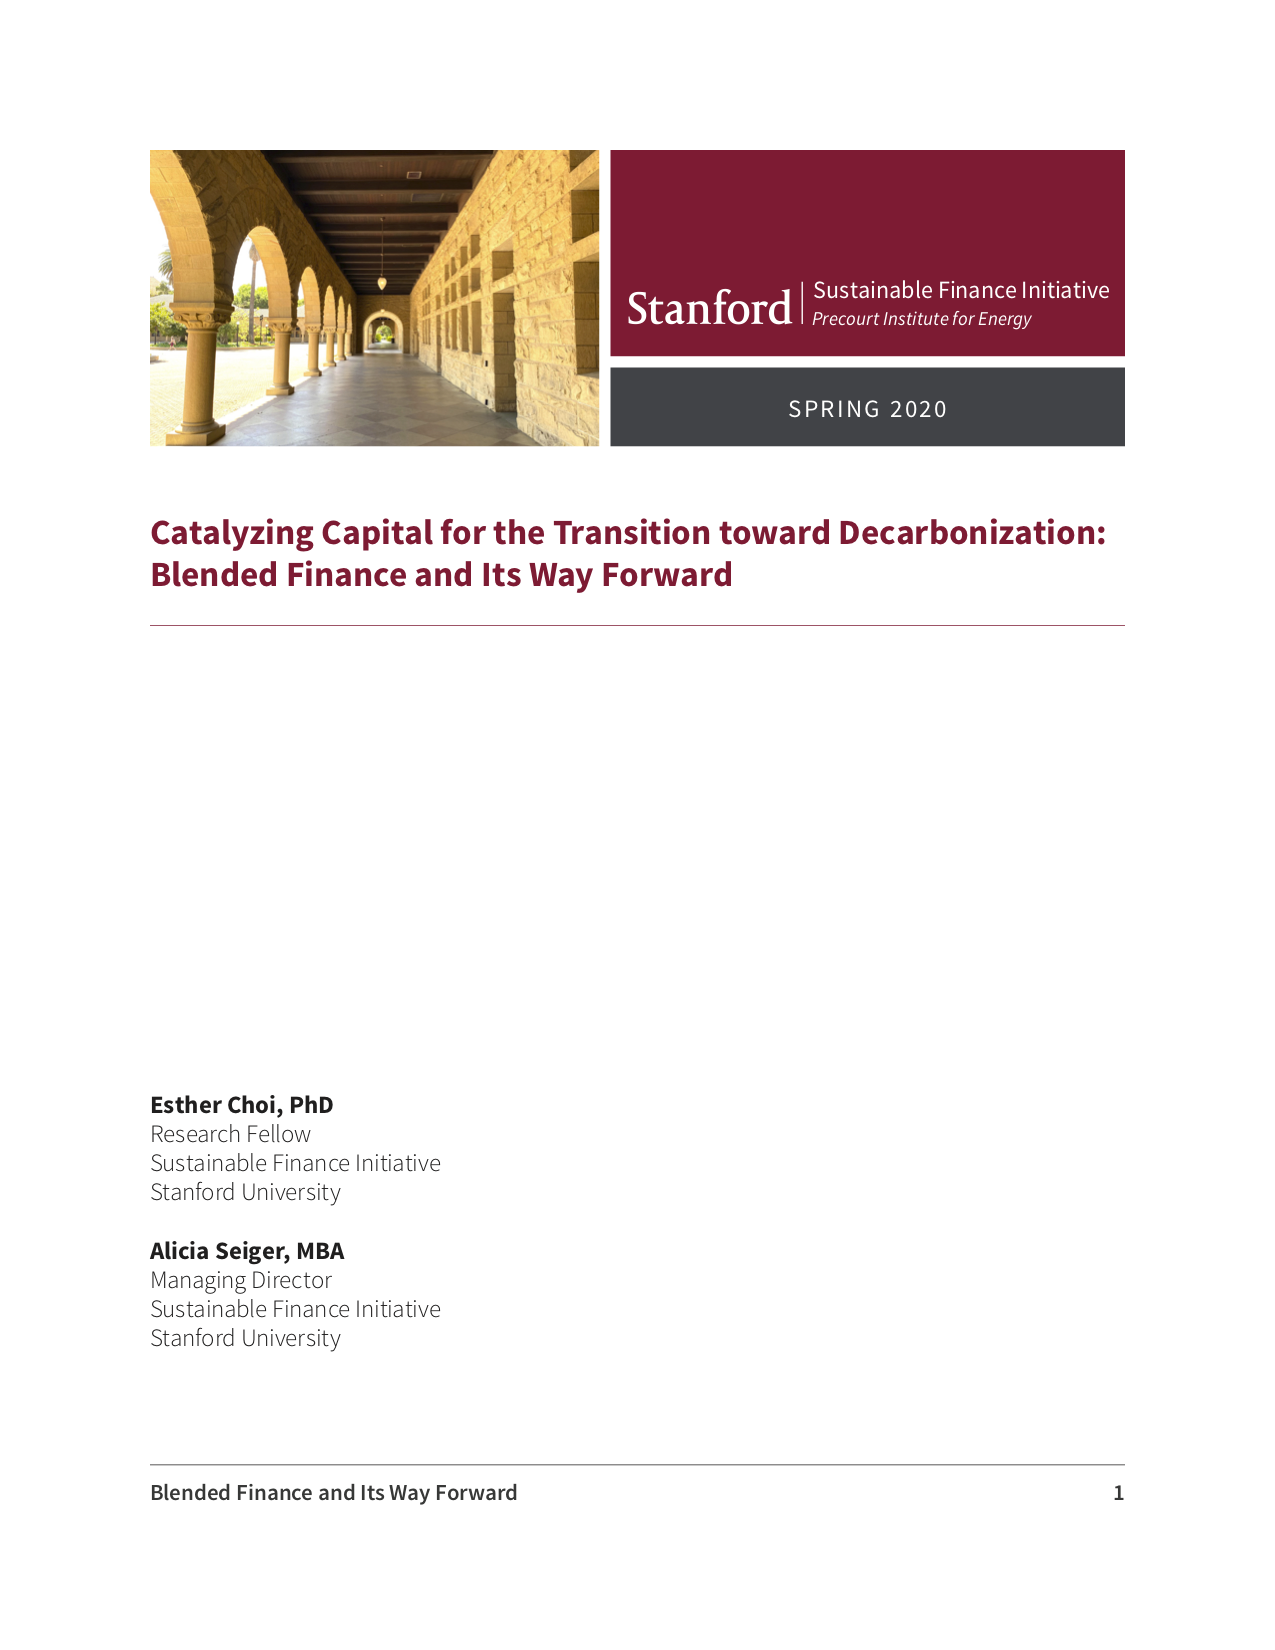 Catalyzing Capital for the Transition towards Decarbonization: Blended Finance and Its Way Forward